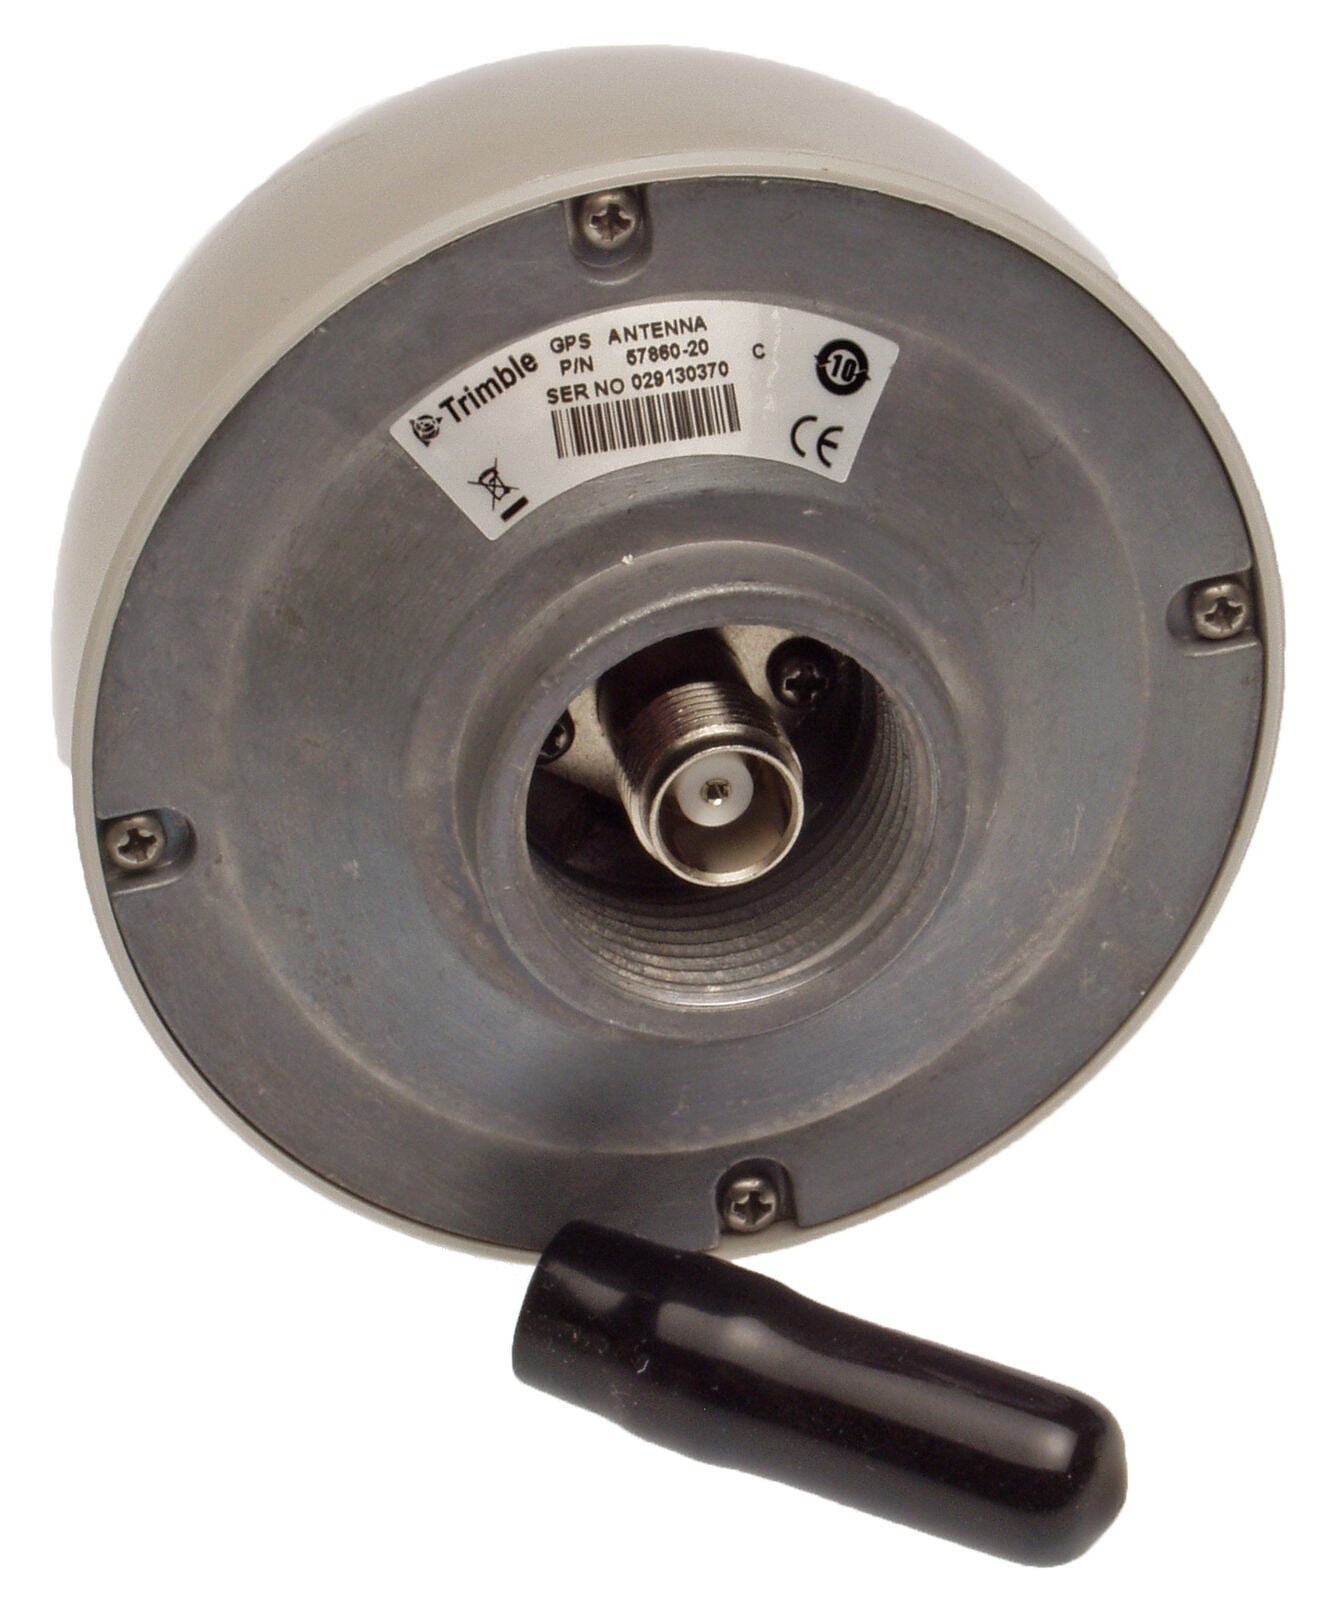 Trimble 57860-20 GPS Bullet III 35dB 5V TNC Rugged Outdoor Antenna (41556-00) [Refurbished]-www.prostudioconnection.com